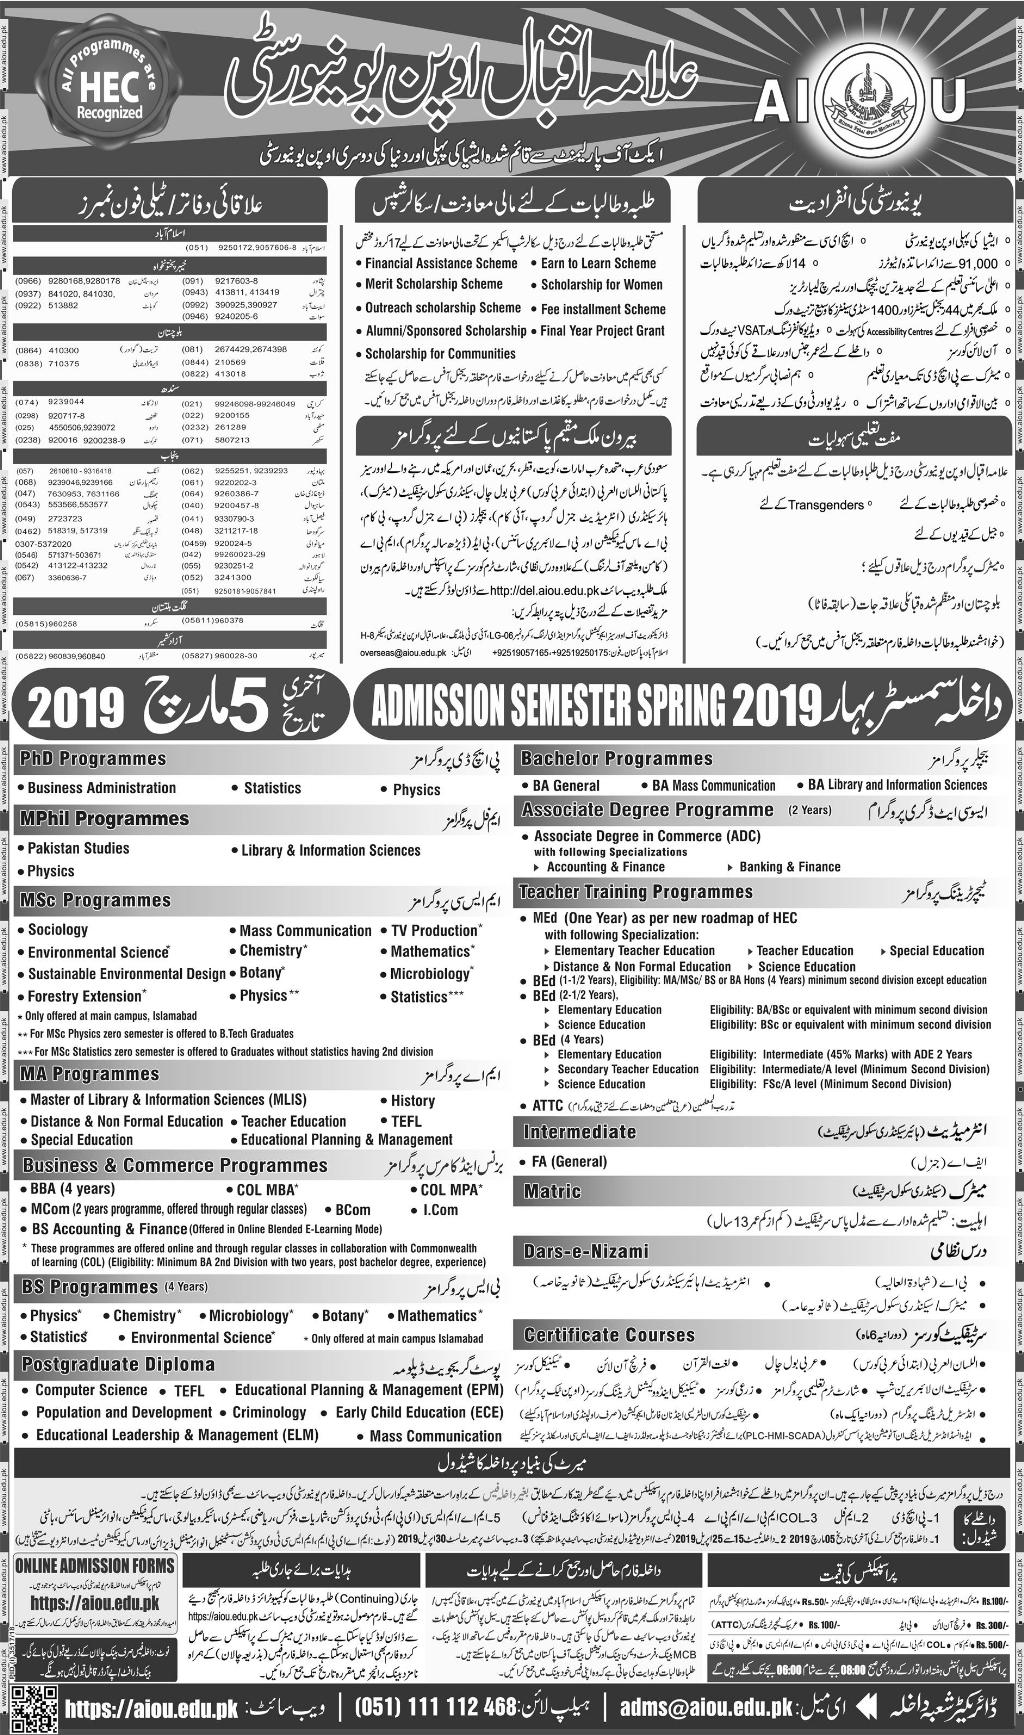 AIOU Spring Admission 2019 Form Last Date, Advertisement